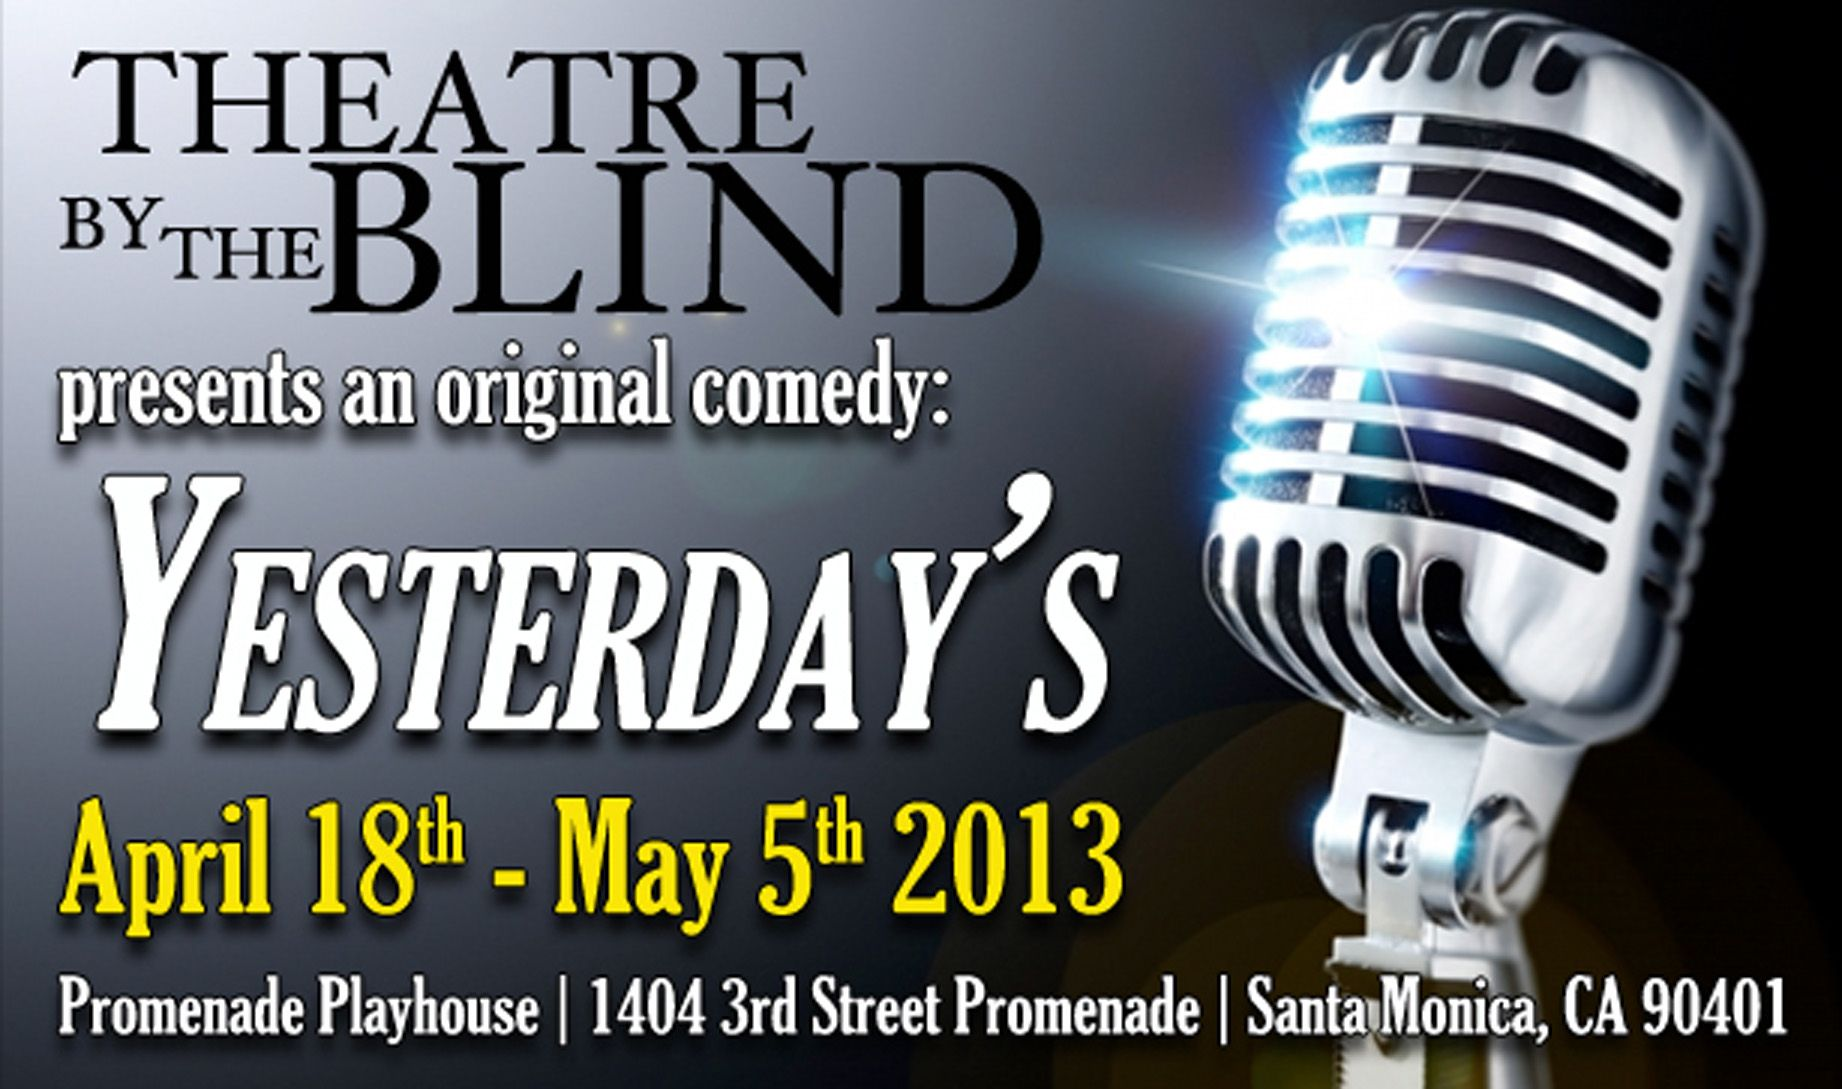 CLICK THROUGH for Event & Ticketing info, $20, #LAThtr, Arnette Coates, blind, Cookie, CRE Outreach, Ernest Pipoly, Events, Humor, Leela Kazerouni, Live Music, Los Angeles, Maria Perez, Melanie Hernandez, Promenade Playhouse, Robert Smith, Sean Gorecki, Sheila Walker, Theater, Theatre By the Blind, Yesterday's